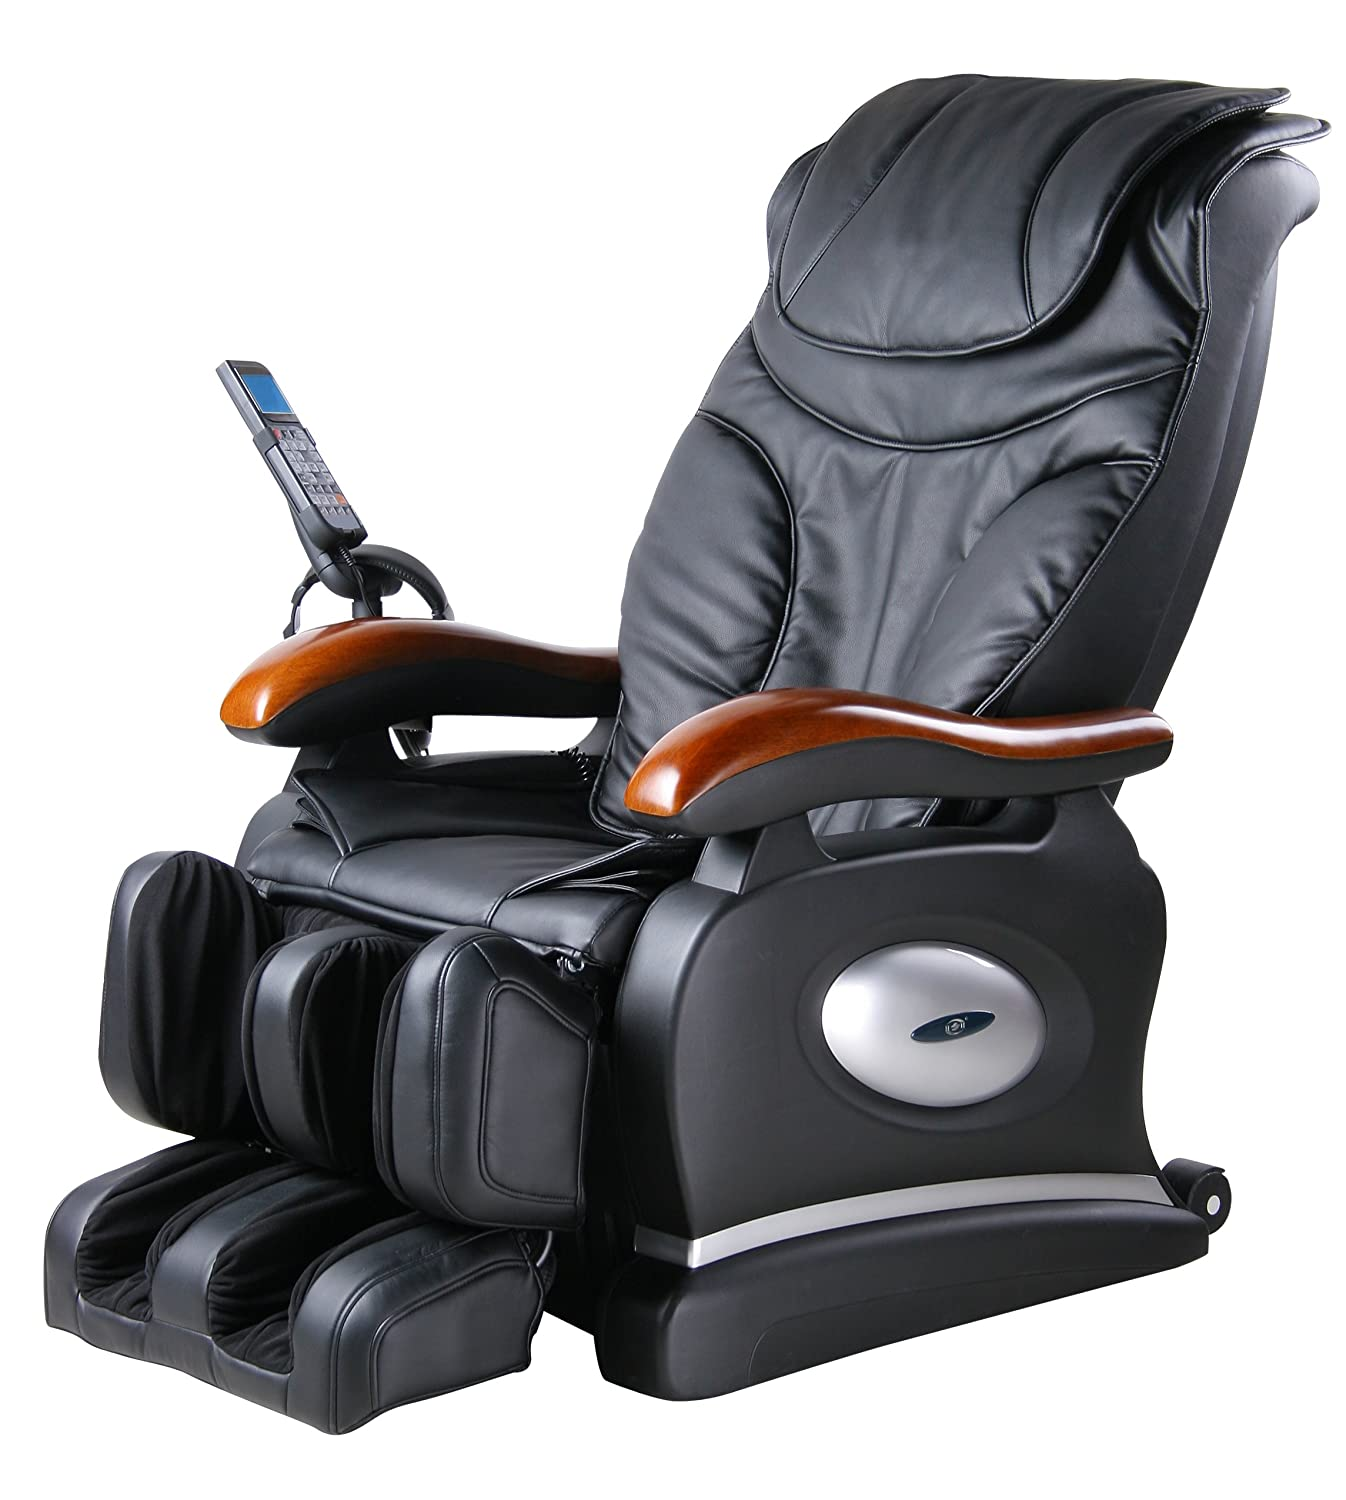 room fish with dining video s chairs vtage comfy org game swivel recliner chair casters amazon massage